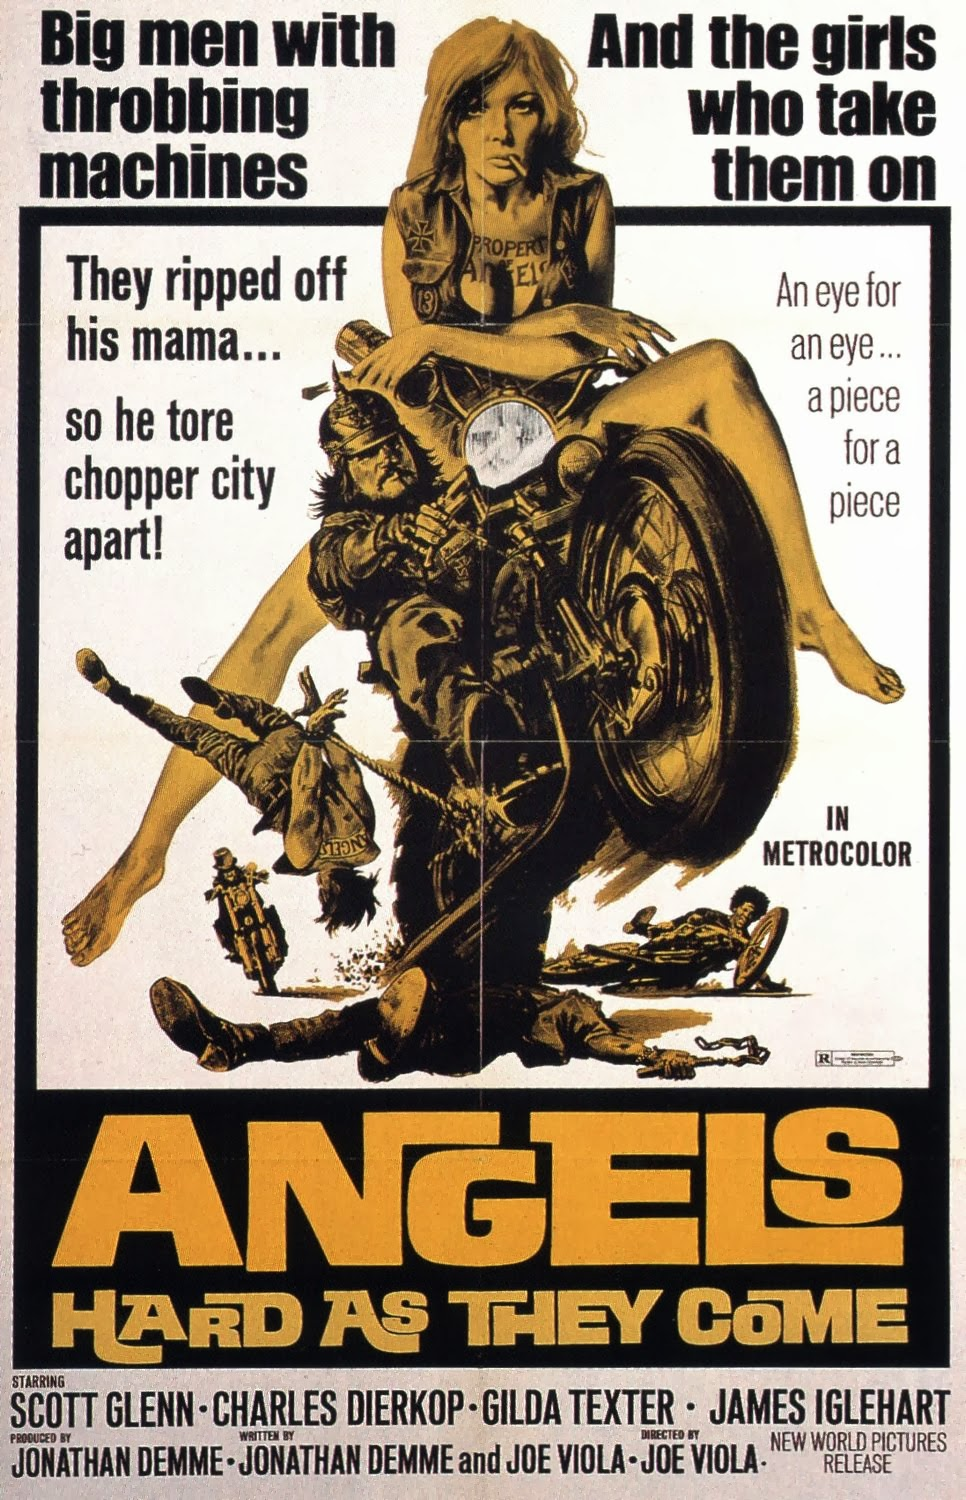 http://www.4shared.com/get/zLns4-LTce/Angels_Hard_as_They_Come_1971.html